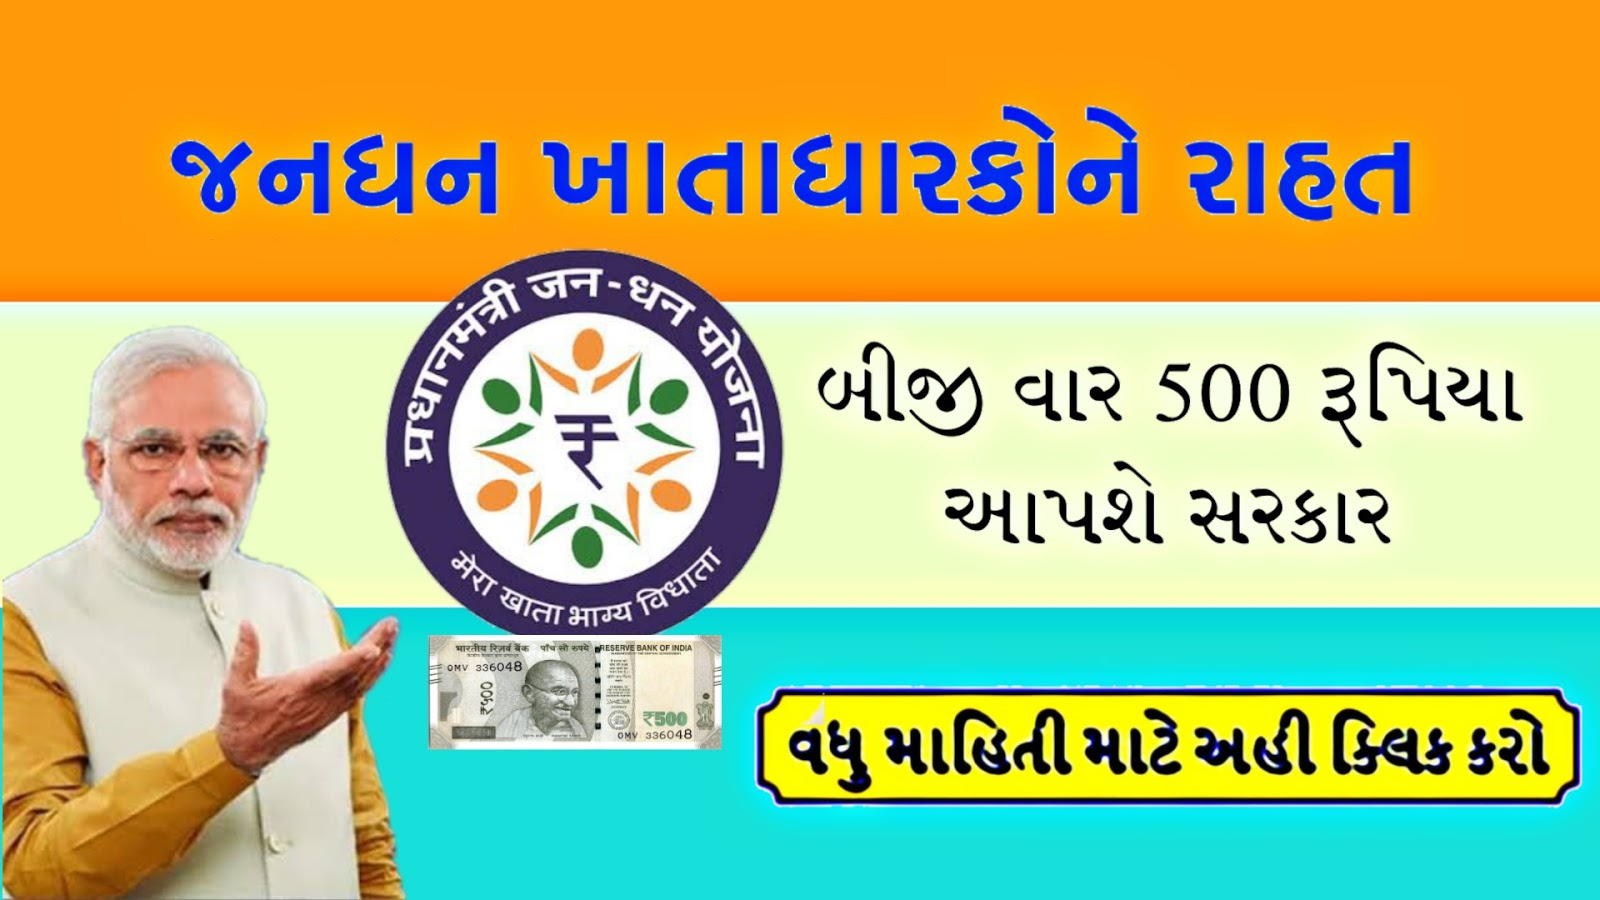 Under Pradhan Mantri Jan Dhan Yojana, Women Account Holders to Receive Rs 500 Per Month from Today